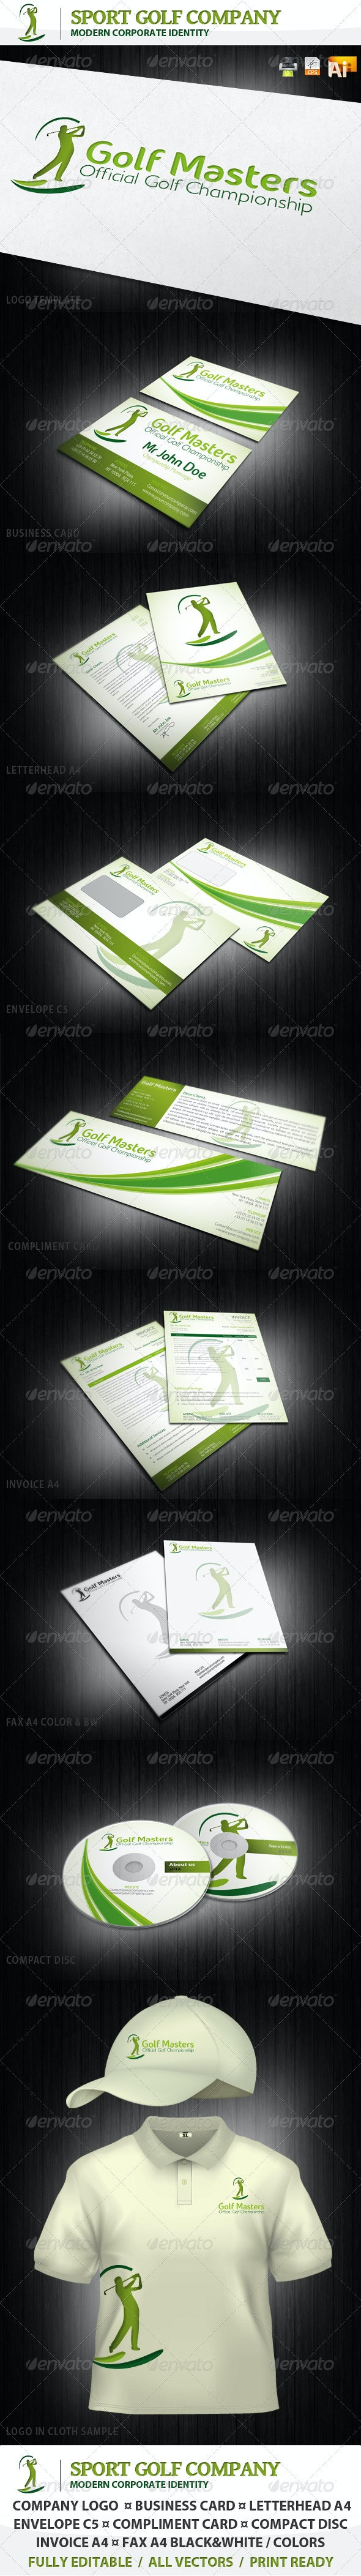 Sport Golf Company Corporate Identity + Logo - Stationery Print Templates